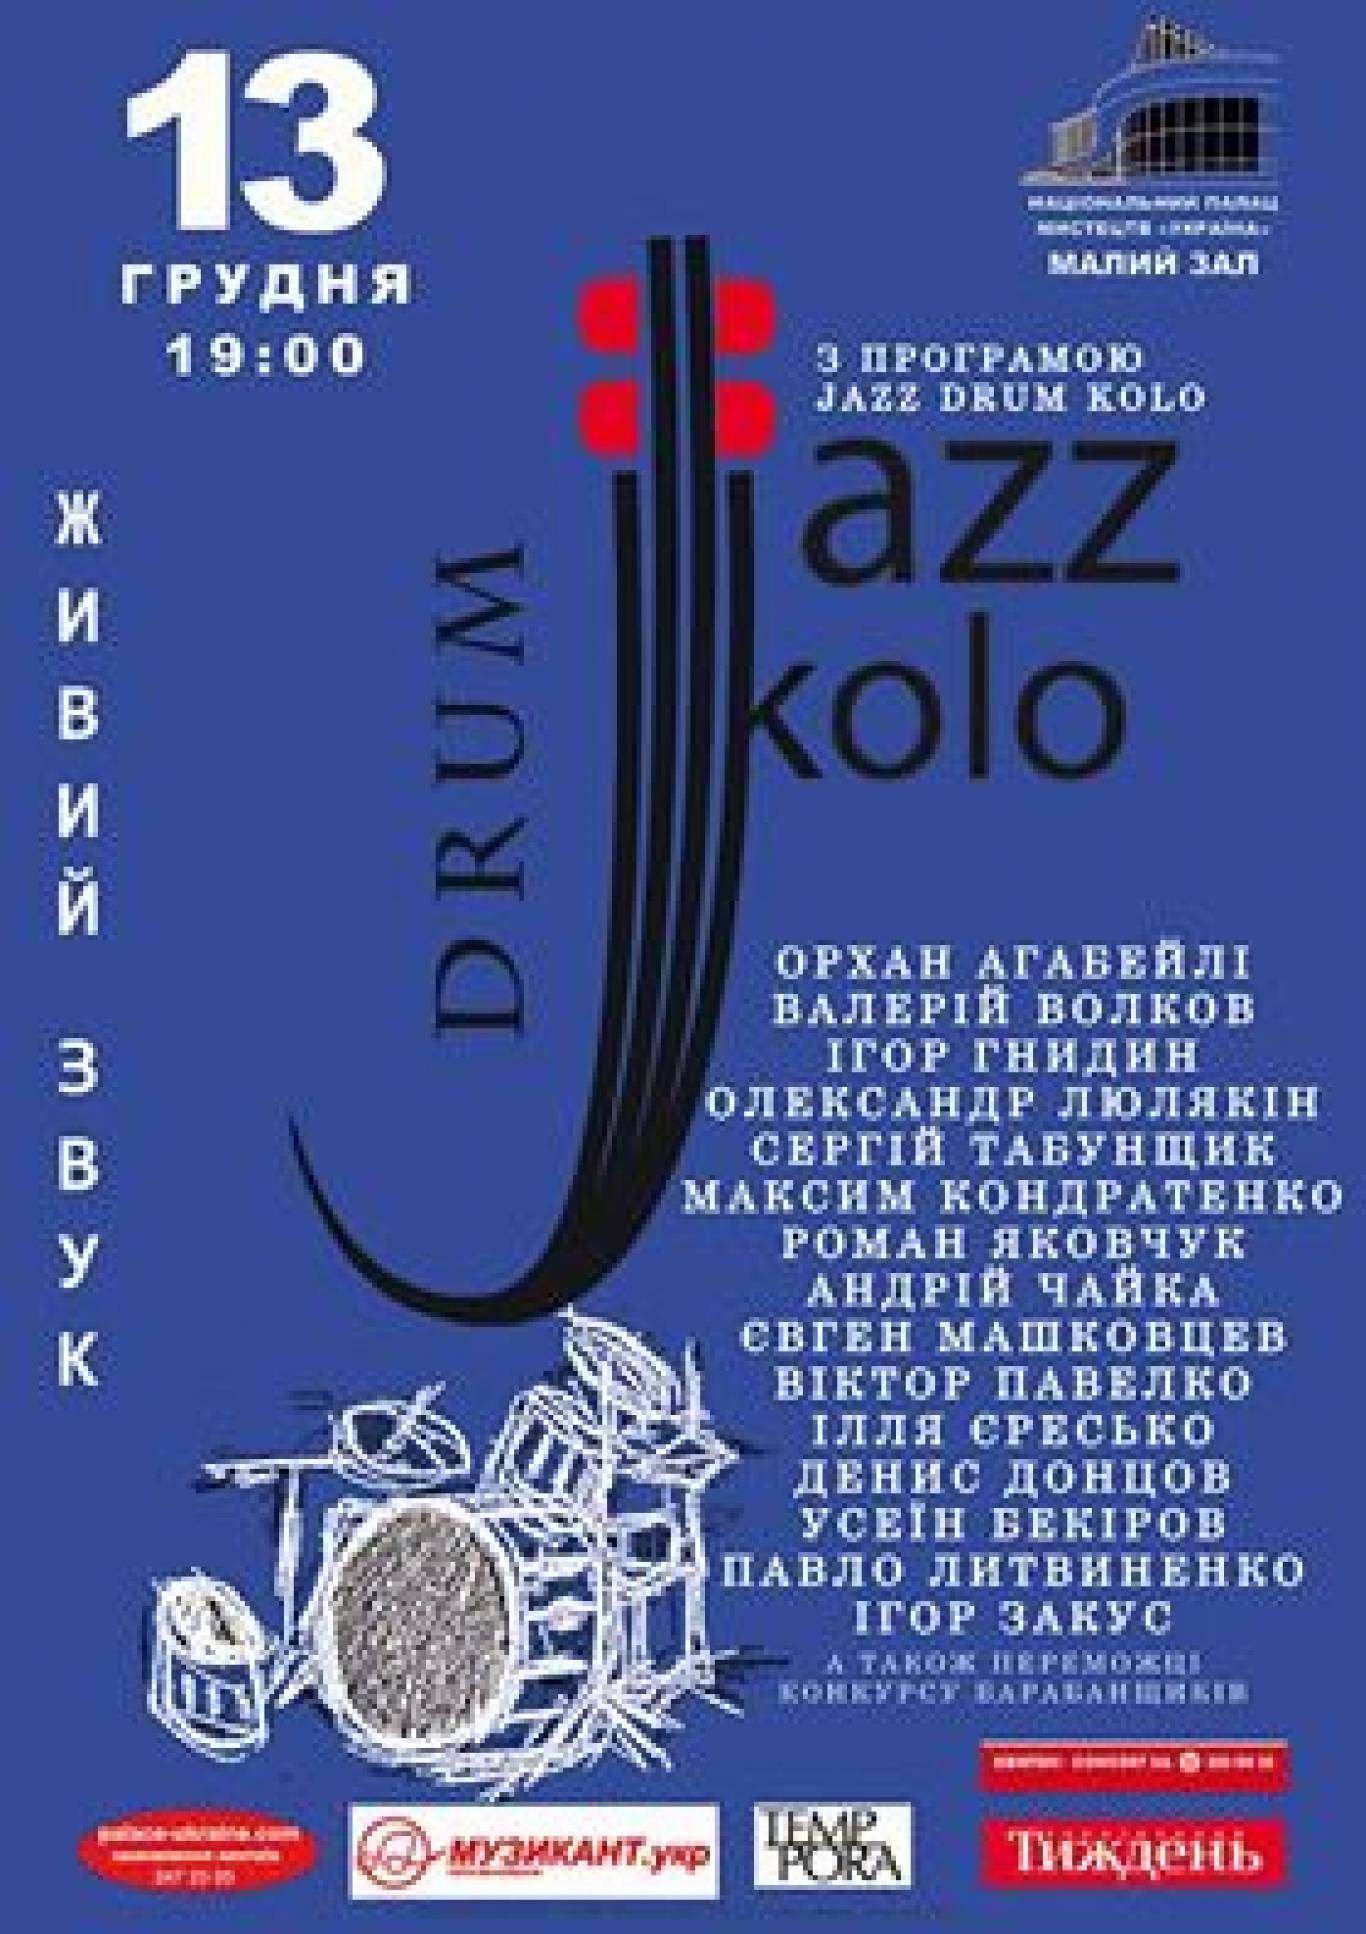 Jazz Drum Kolo